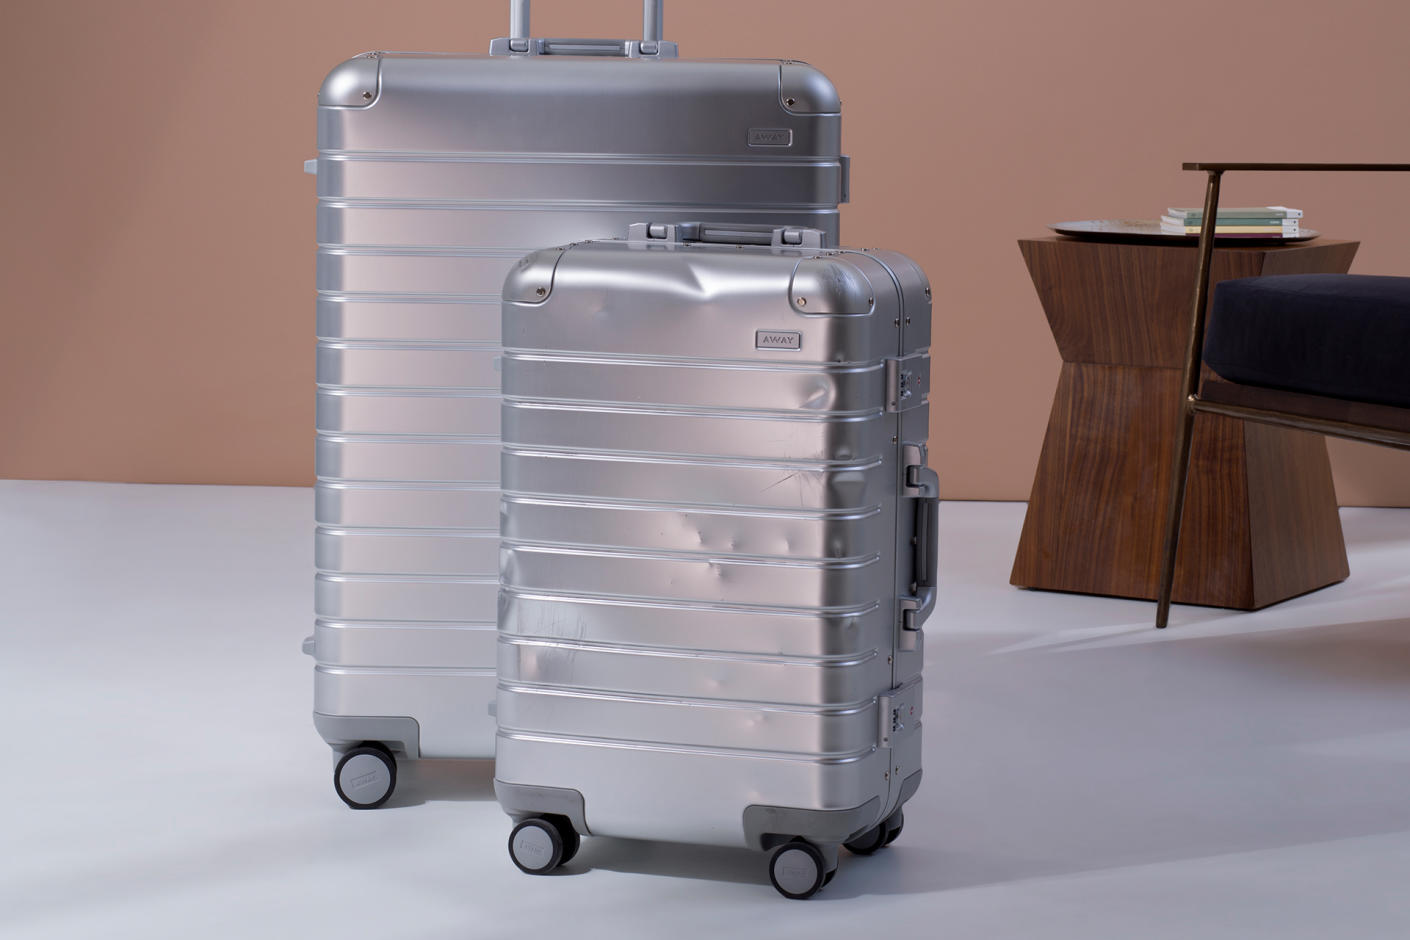 The aluminum Bigger Carry On and Large suitcases. The Bigger Carry On has dents.